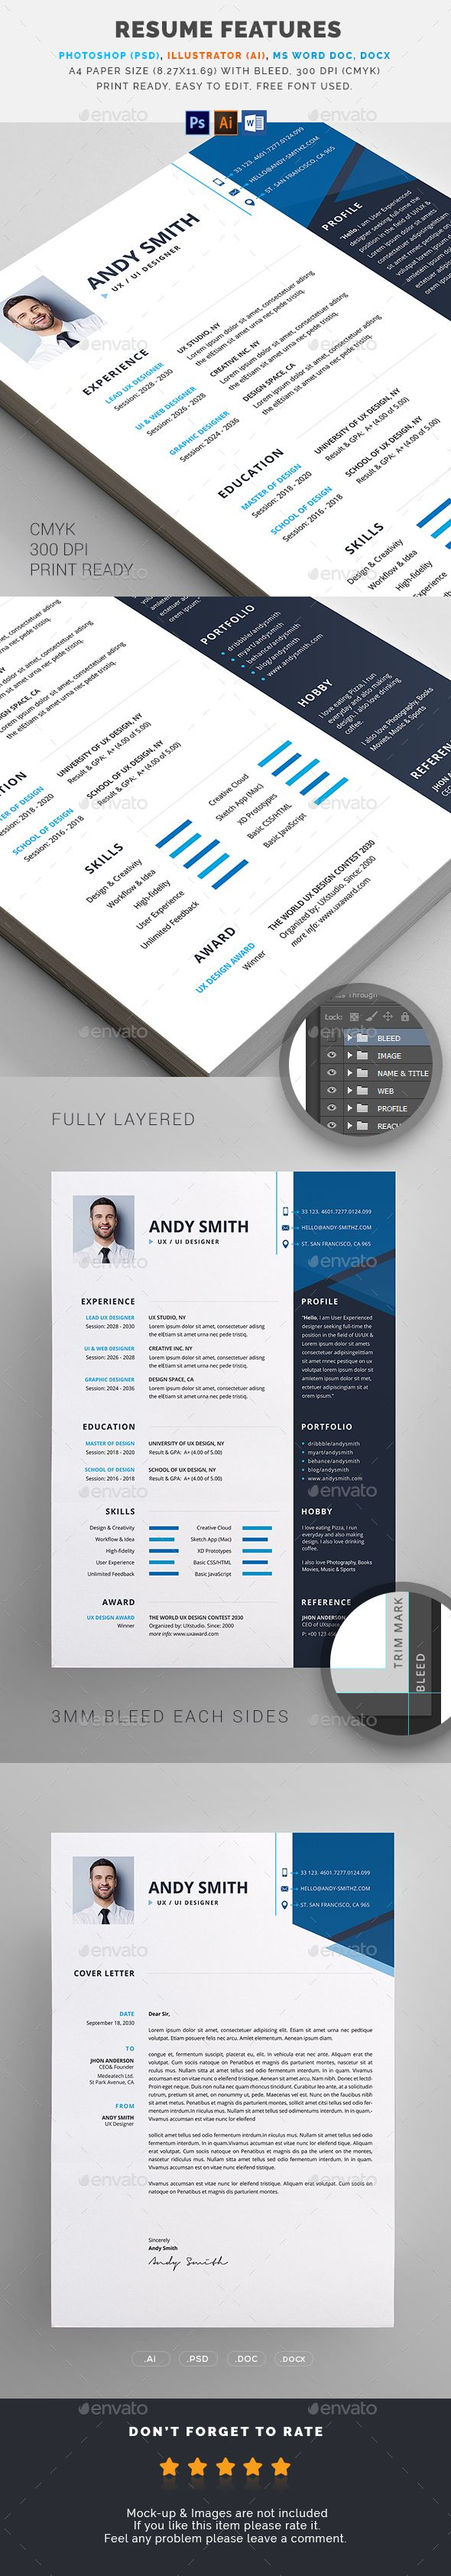 printable resume format%0A Resume